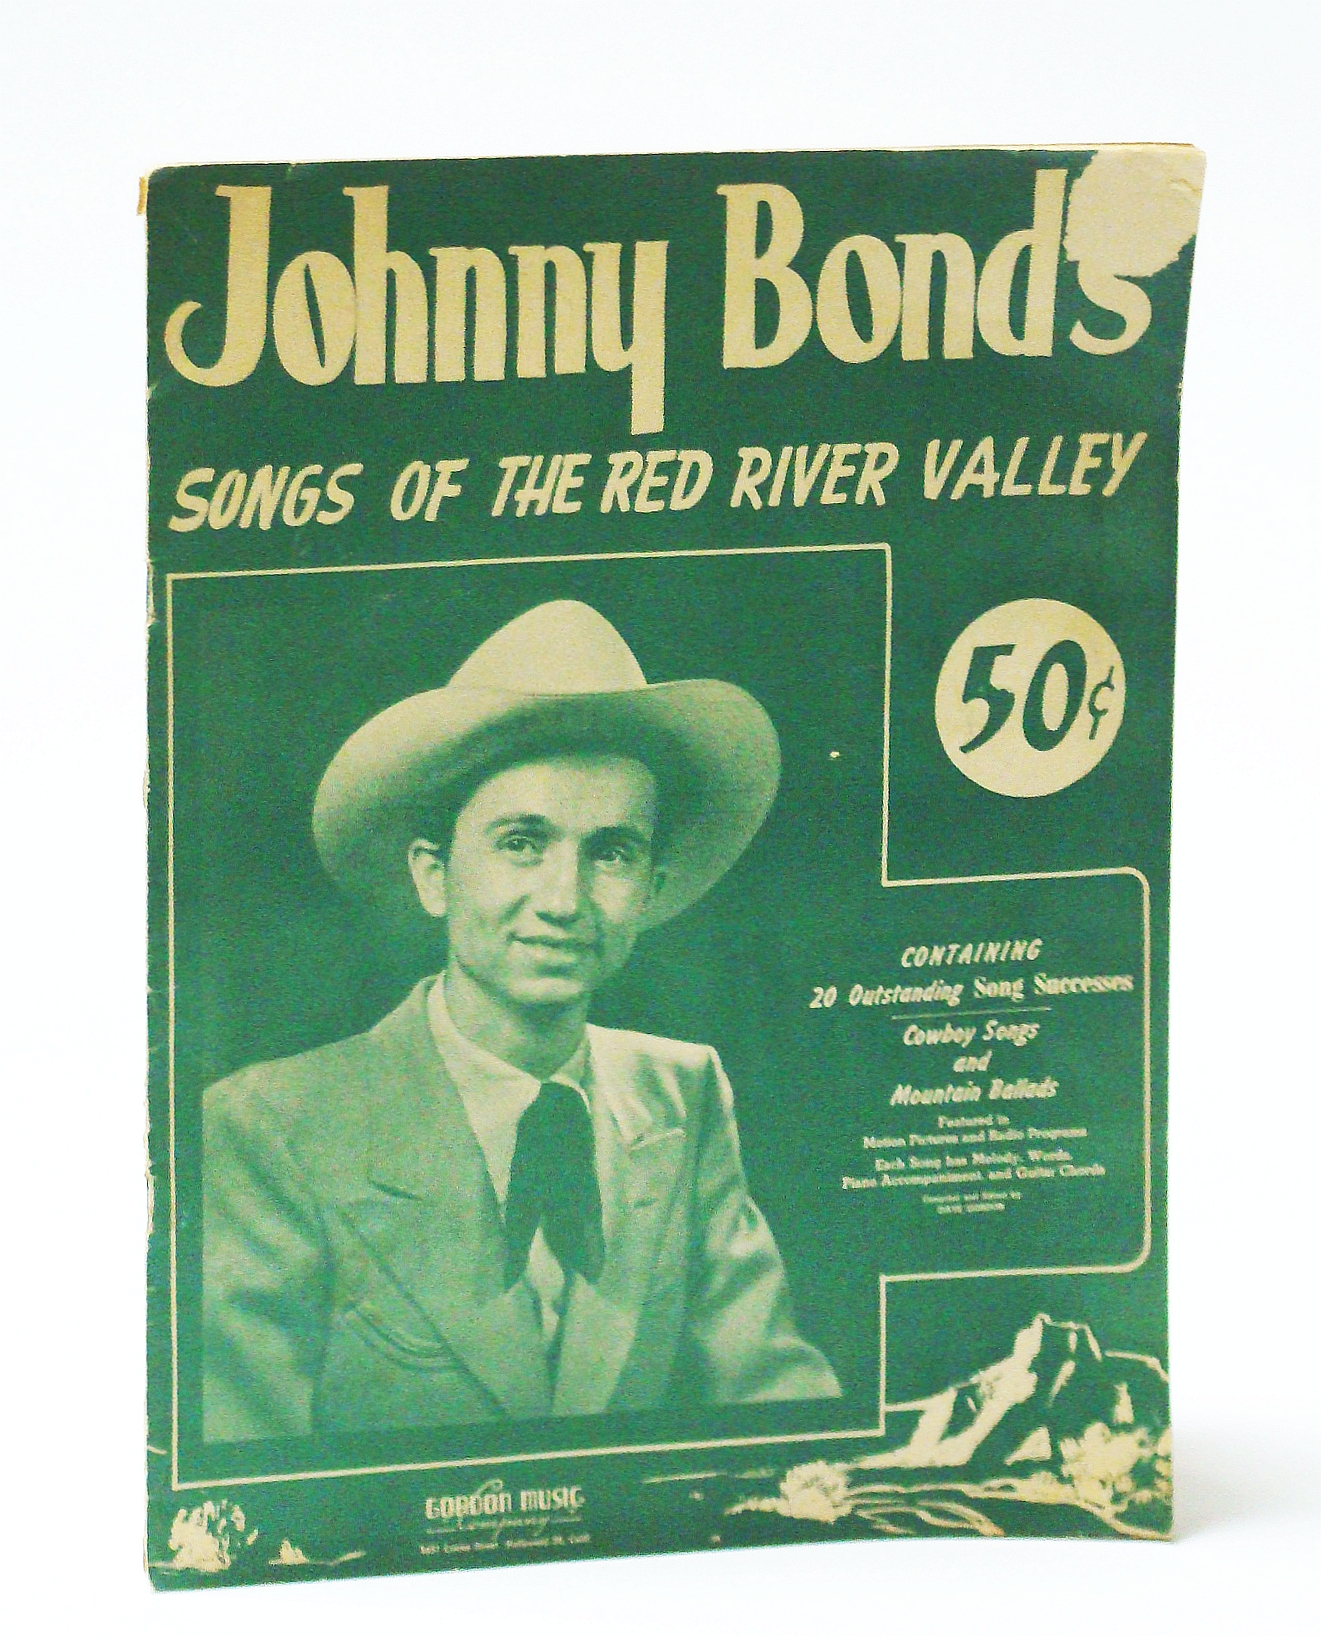 Image for Johnny Bond's Songs of the Red River Valley: Songbook with Sheet Music for Piano and Voice